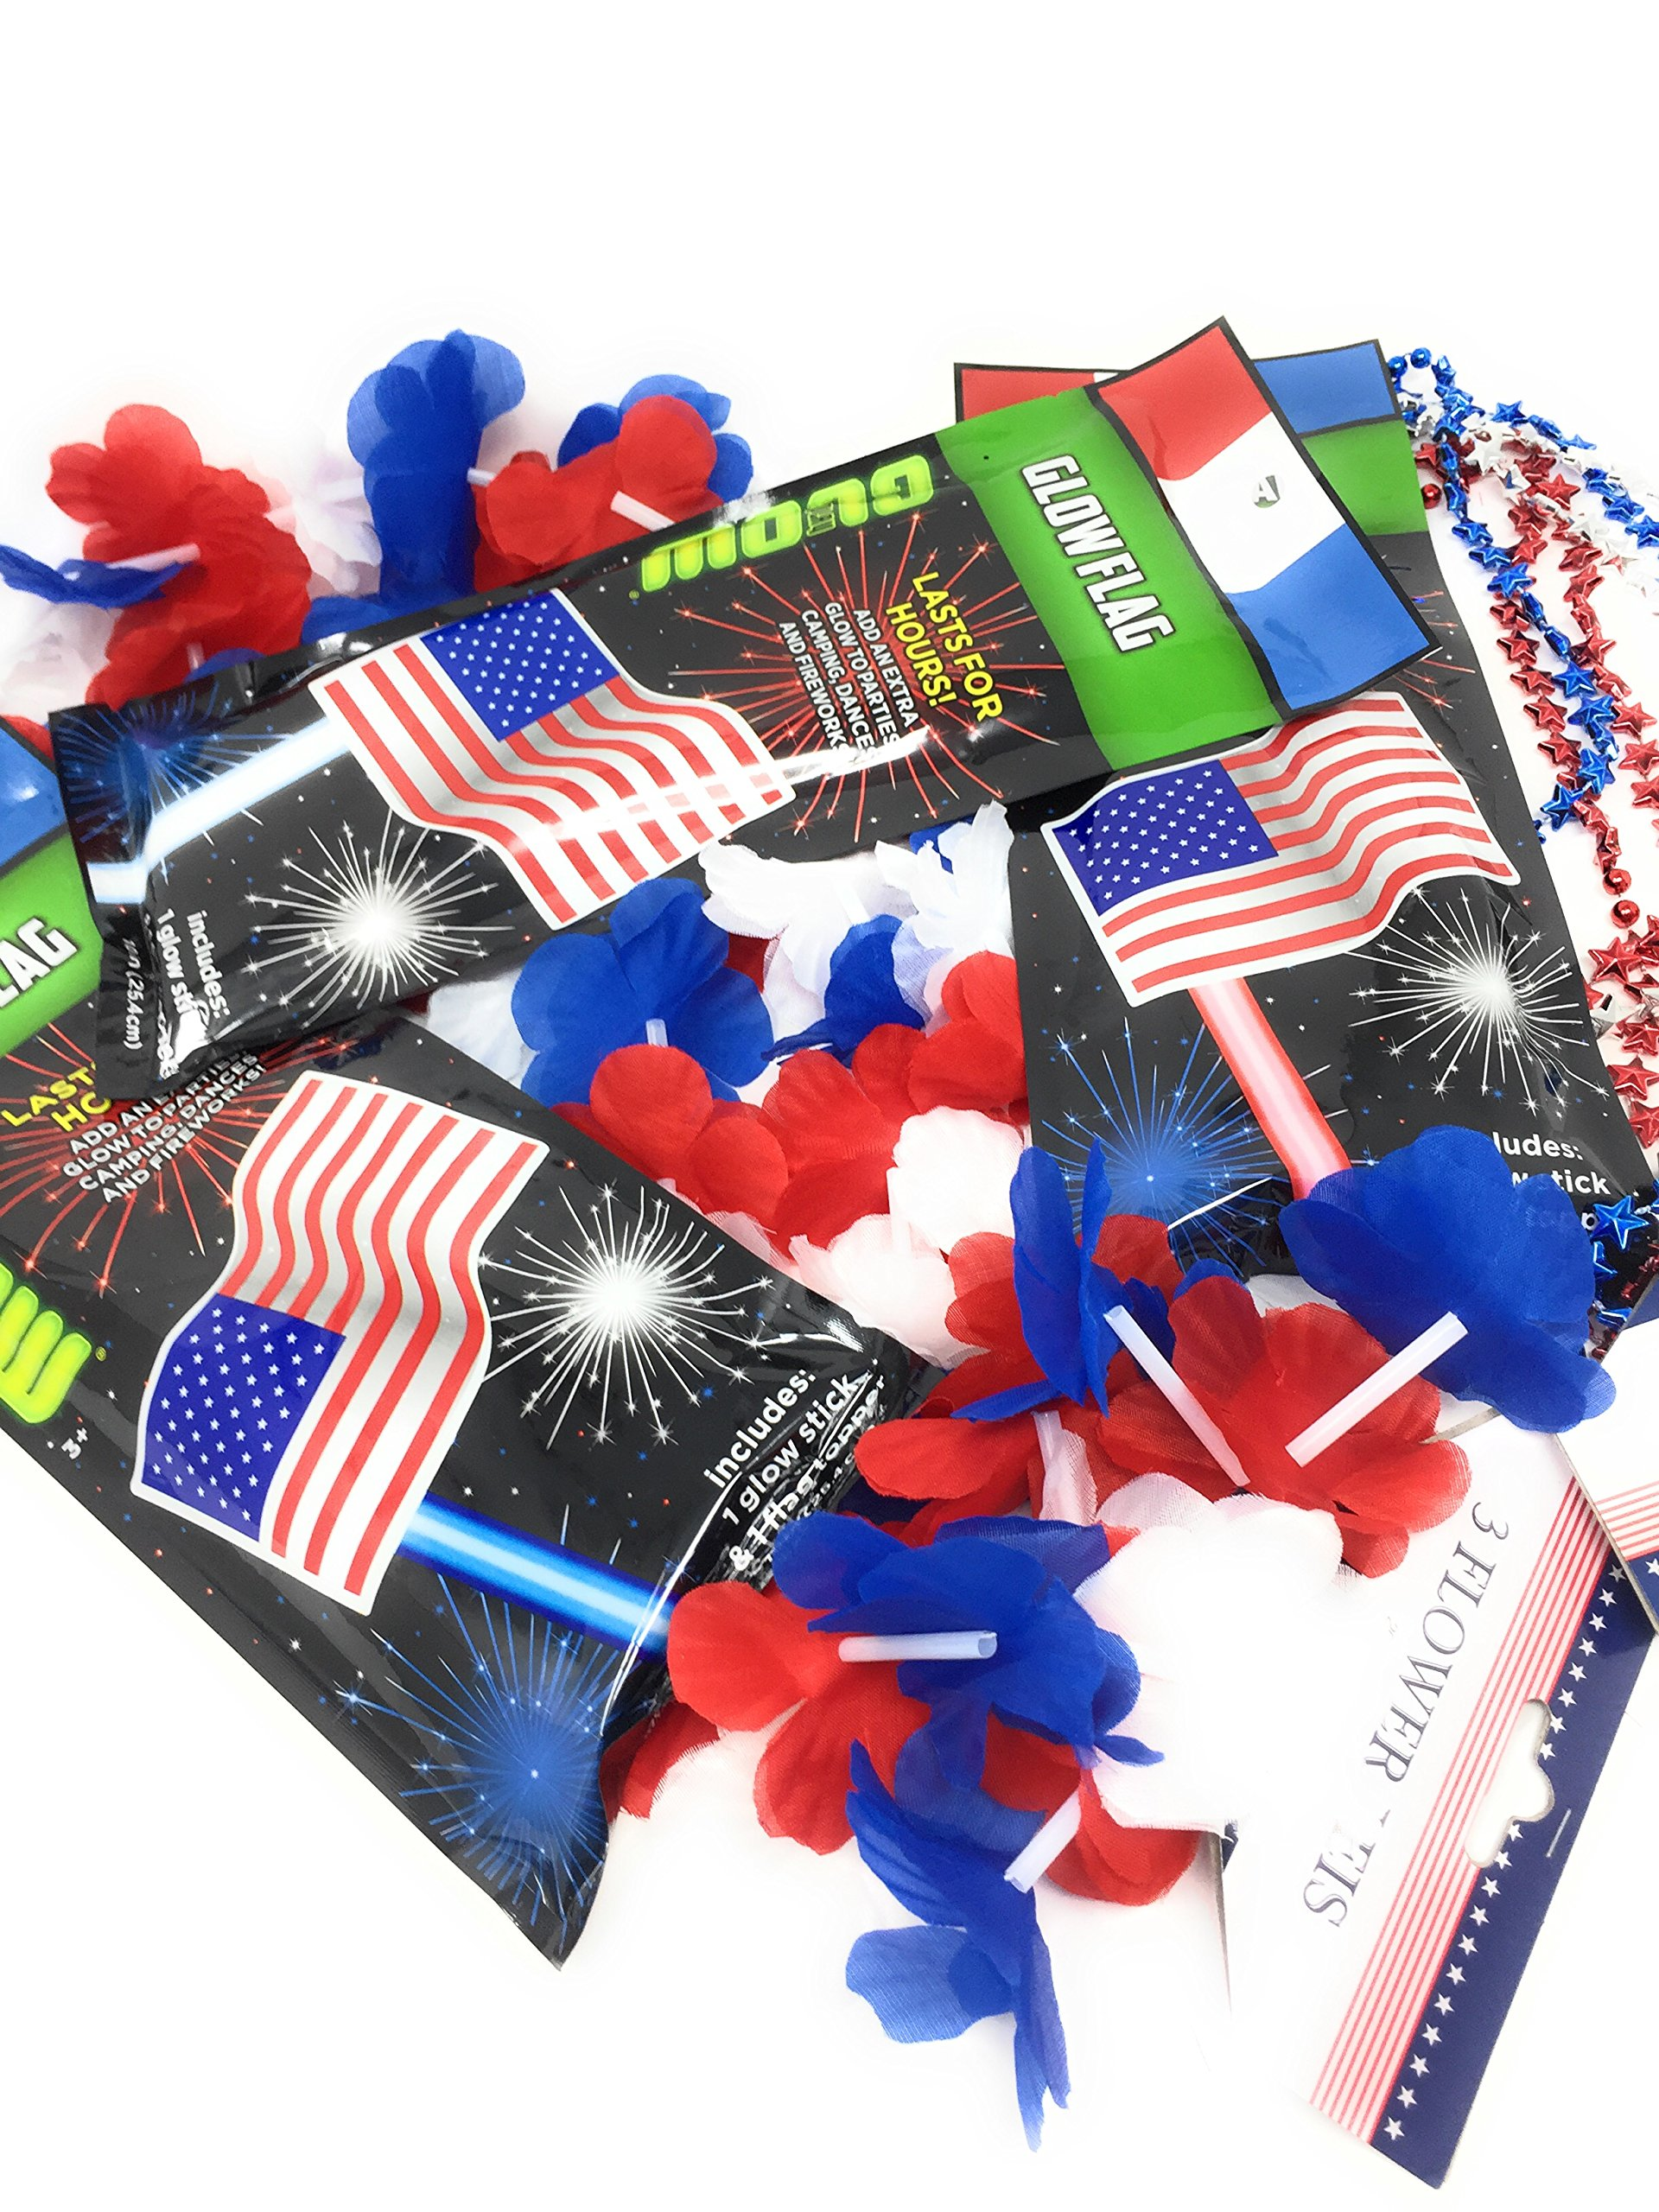 Patriotic Party Pack 3 USA Flag Glow Sticks (1) 3 Pack Patriotic Flower Leis (1) 3 Pack USA Necklaces Plus 100 Plus Tips Guide to A Safe 4th of July Celebration by Unknown (Image #1)